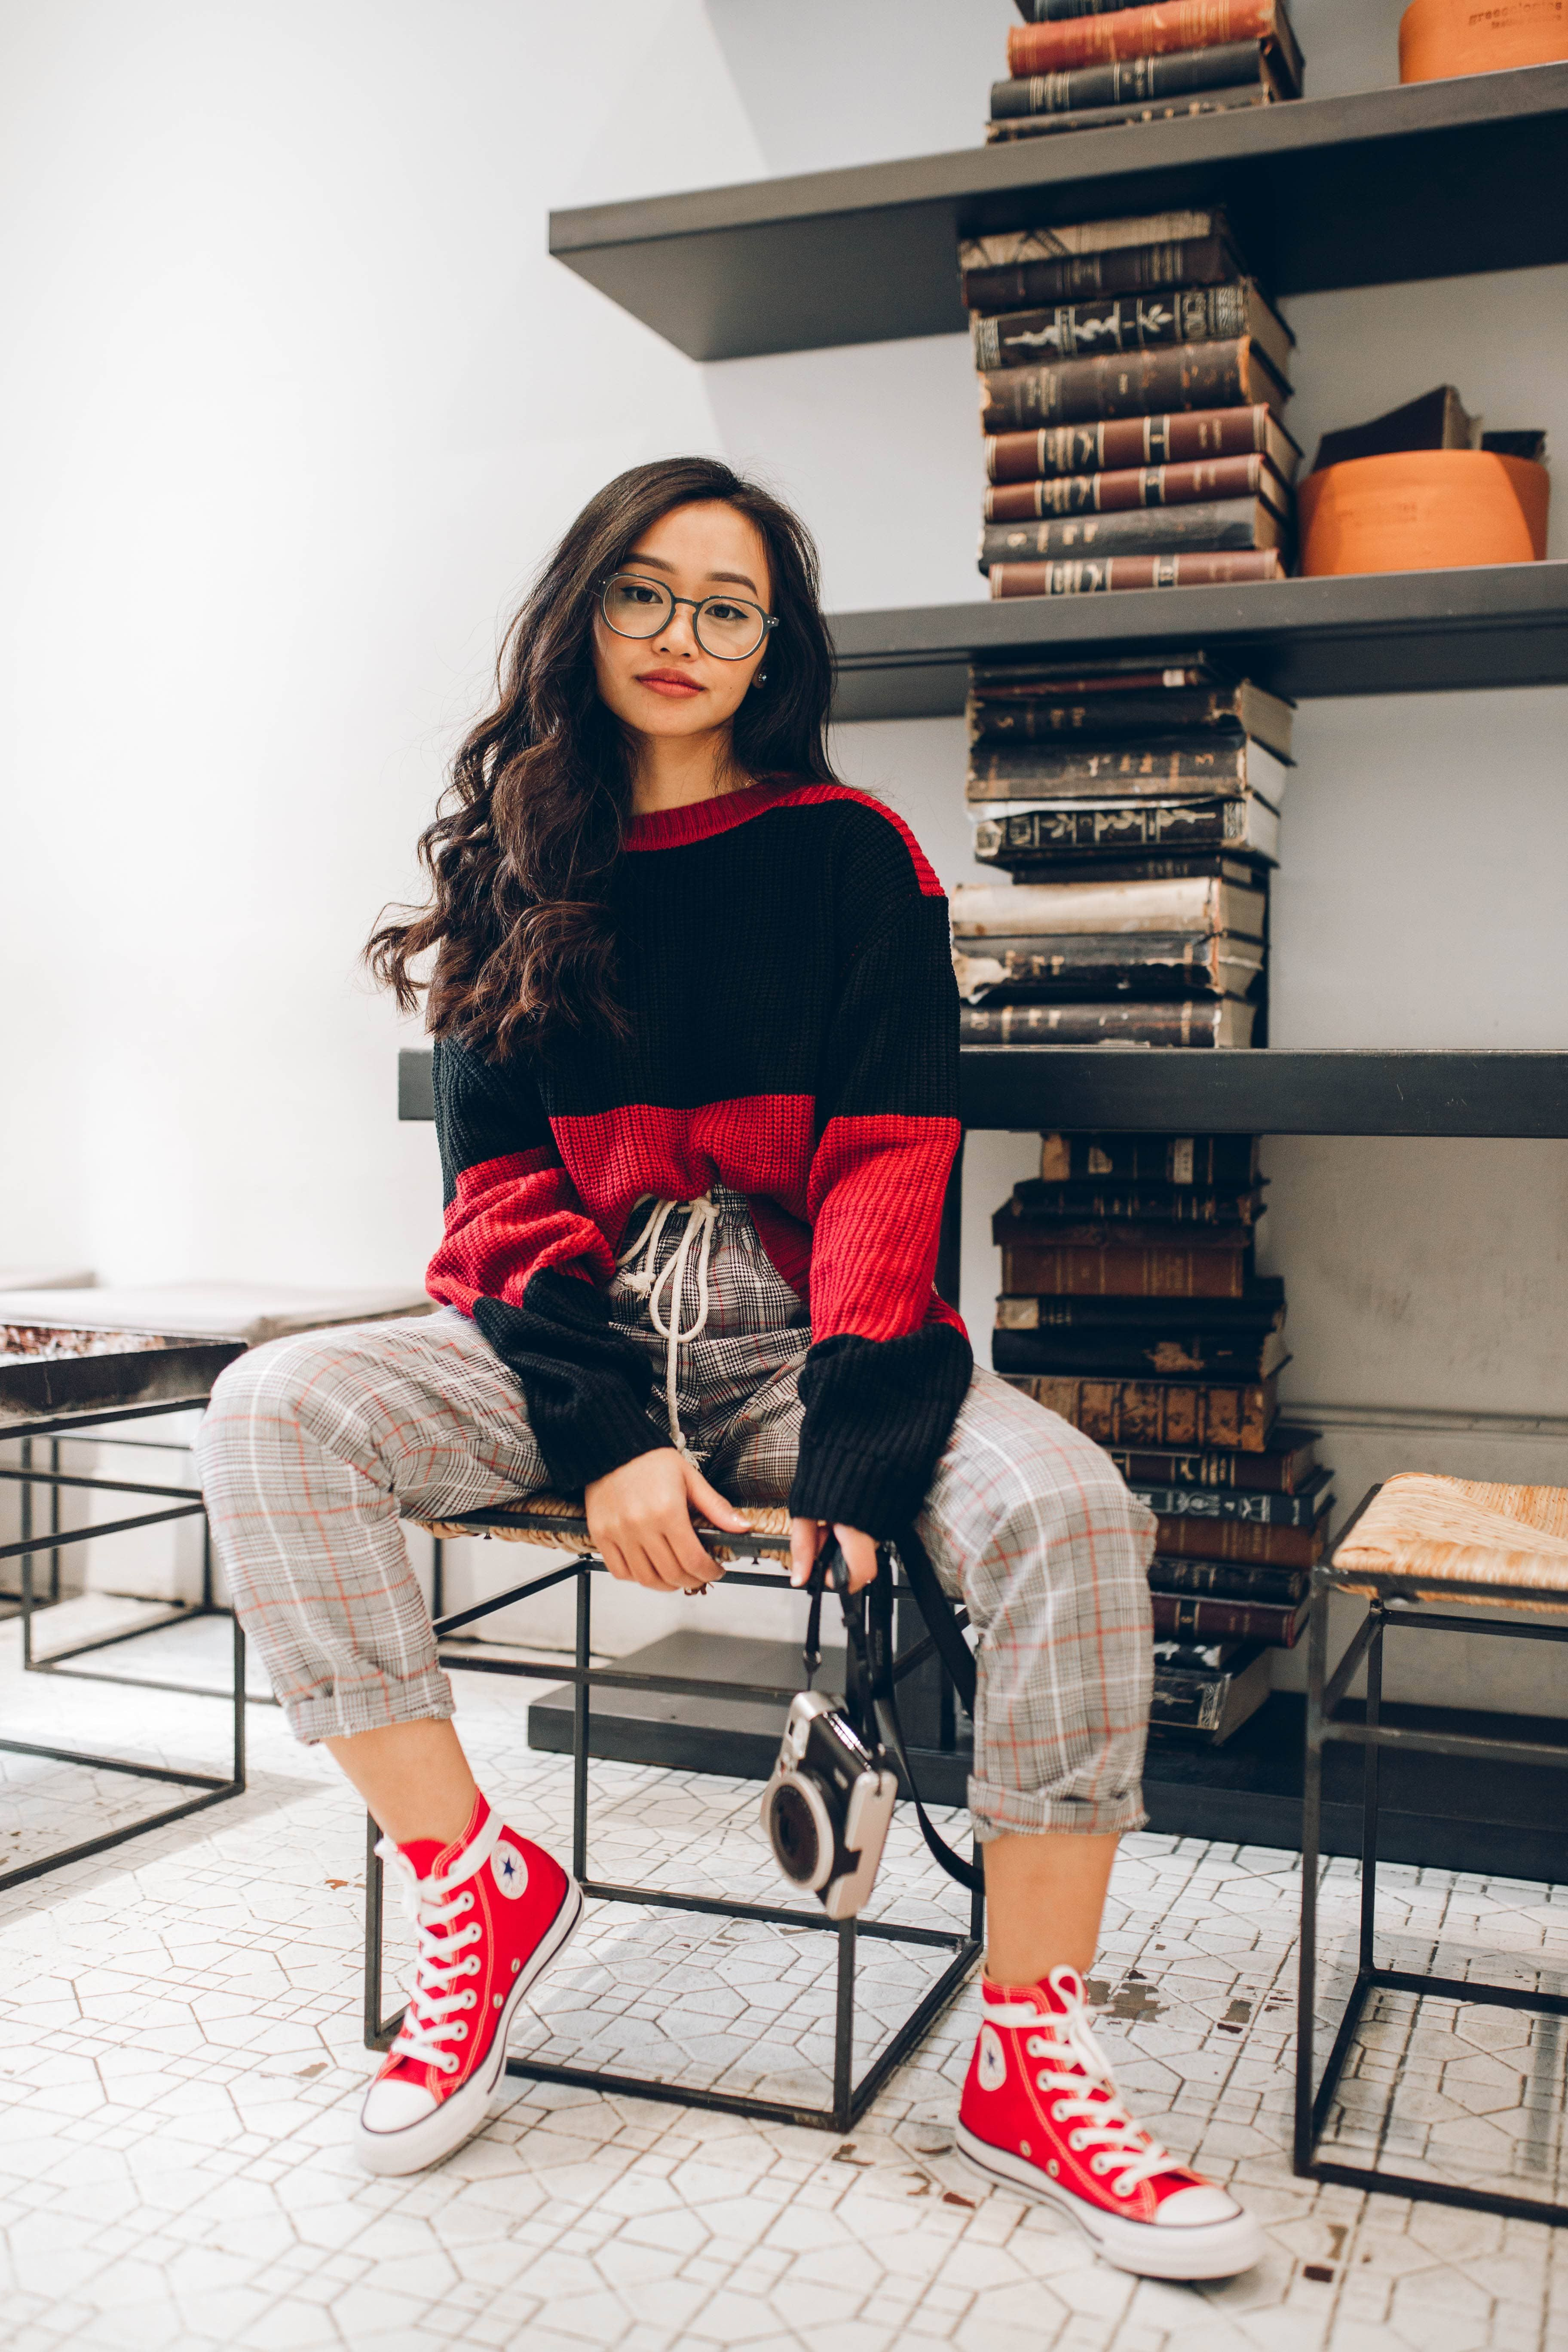 Óxido Canadá Mula  Hang Nguyen makes red Chuck Taylor All Stars look good. #ForeverChuck  #ConverseStyle | Red converse outfit, Red outfit casual, Red outfit